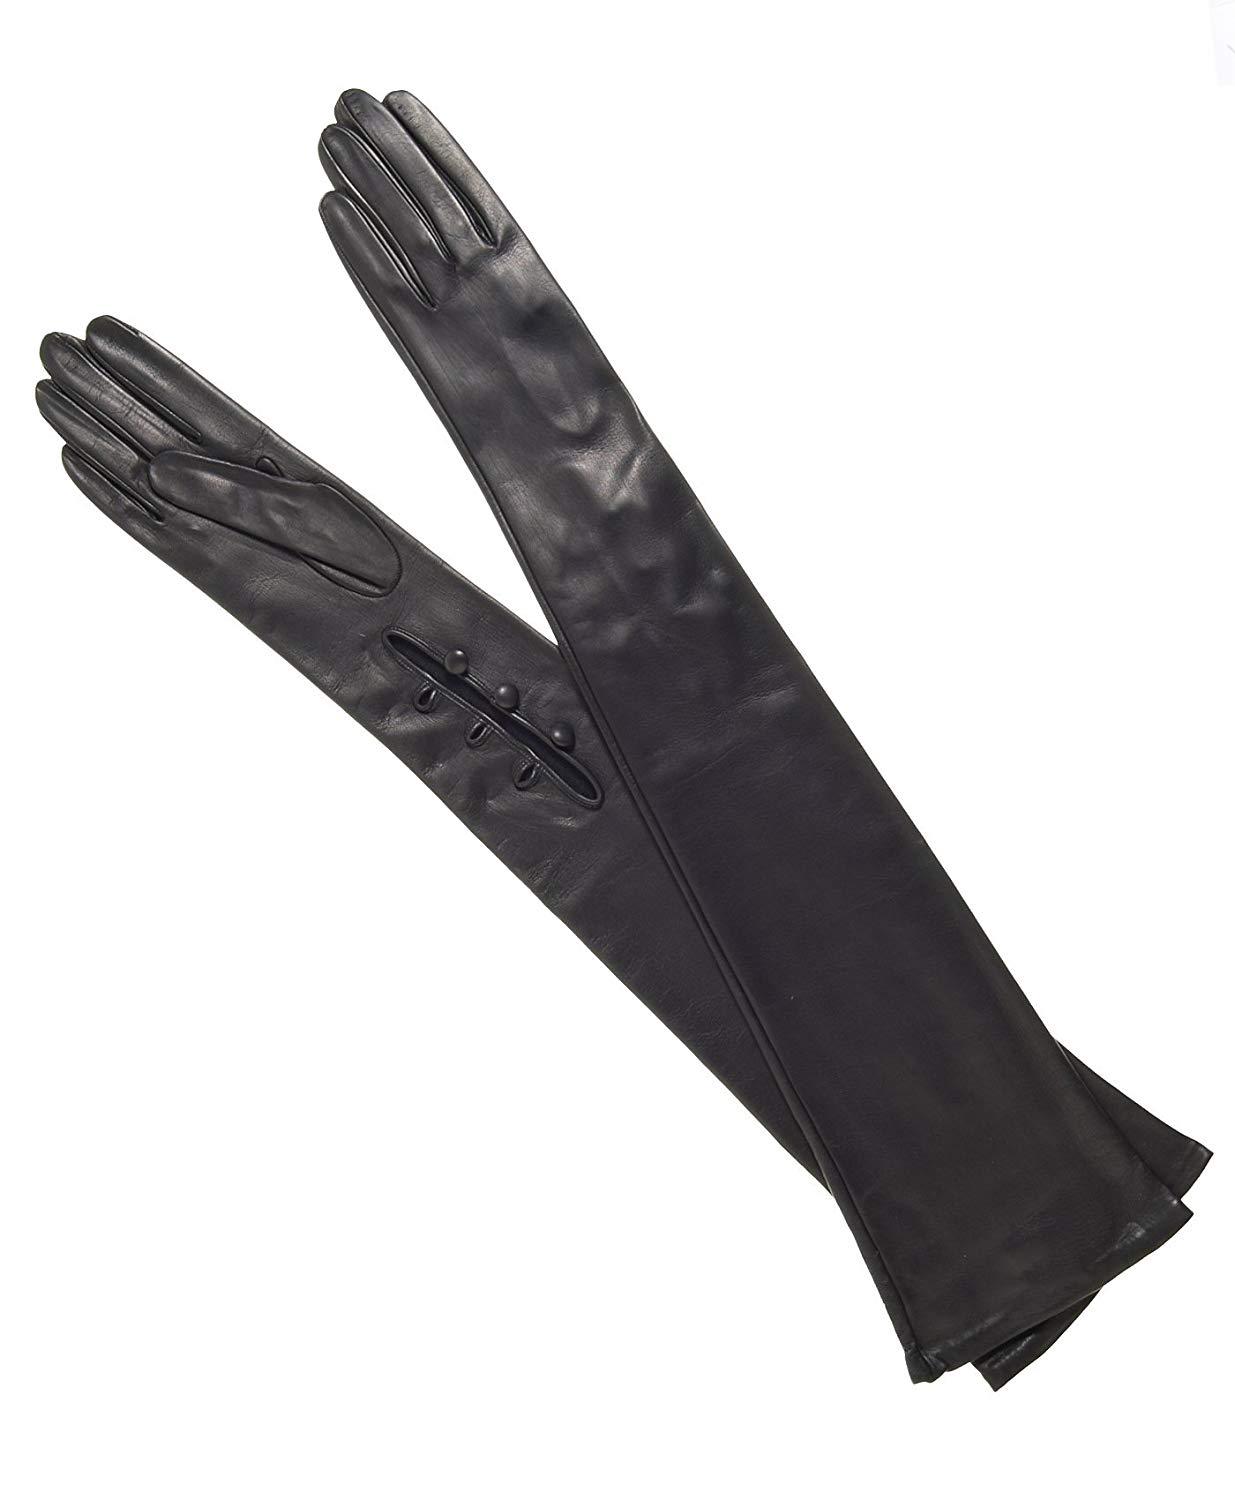 c6238276a Get Quotations · Fratelli Orsini Women's Italian Leather Opera Gloves -  16-Button Length